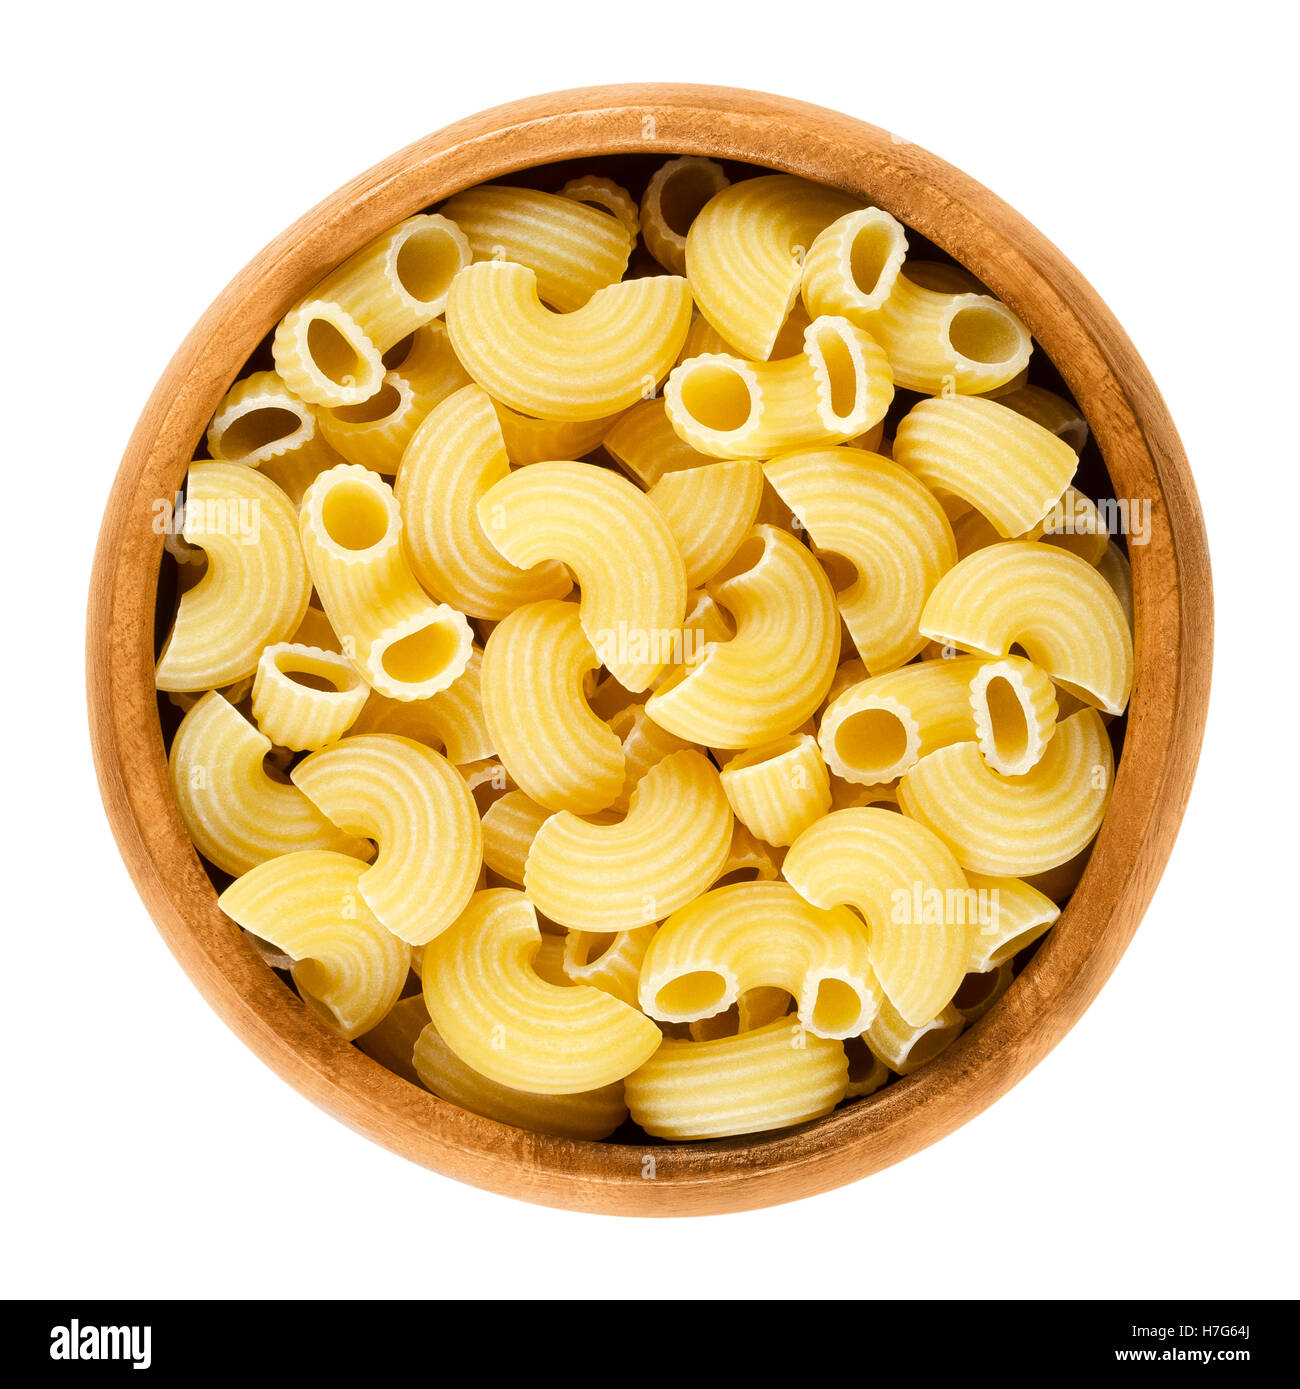 Chifferi pasta in wooden bowl. Bent tubes, short-cut and wide macaroni. Italian noodles prepared with eggs. - Stock Image